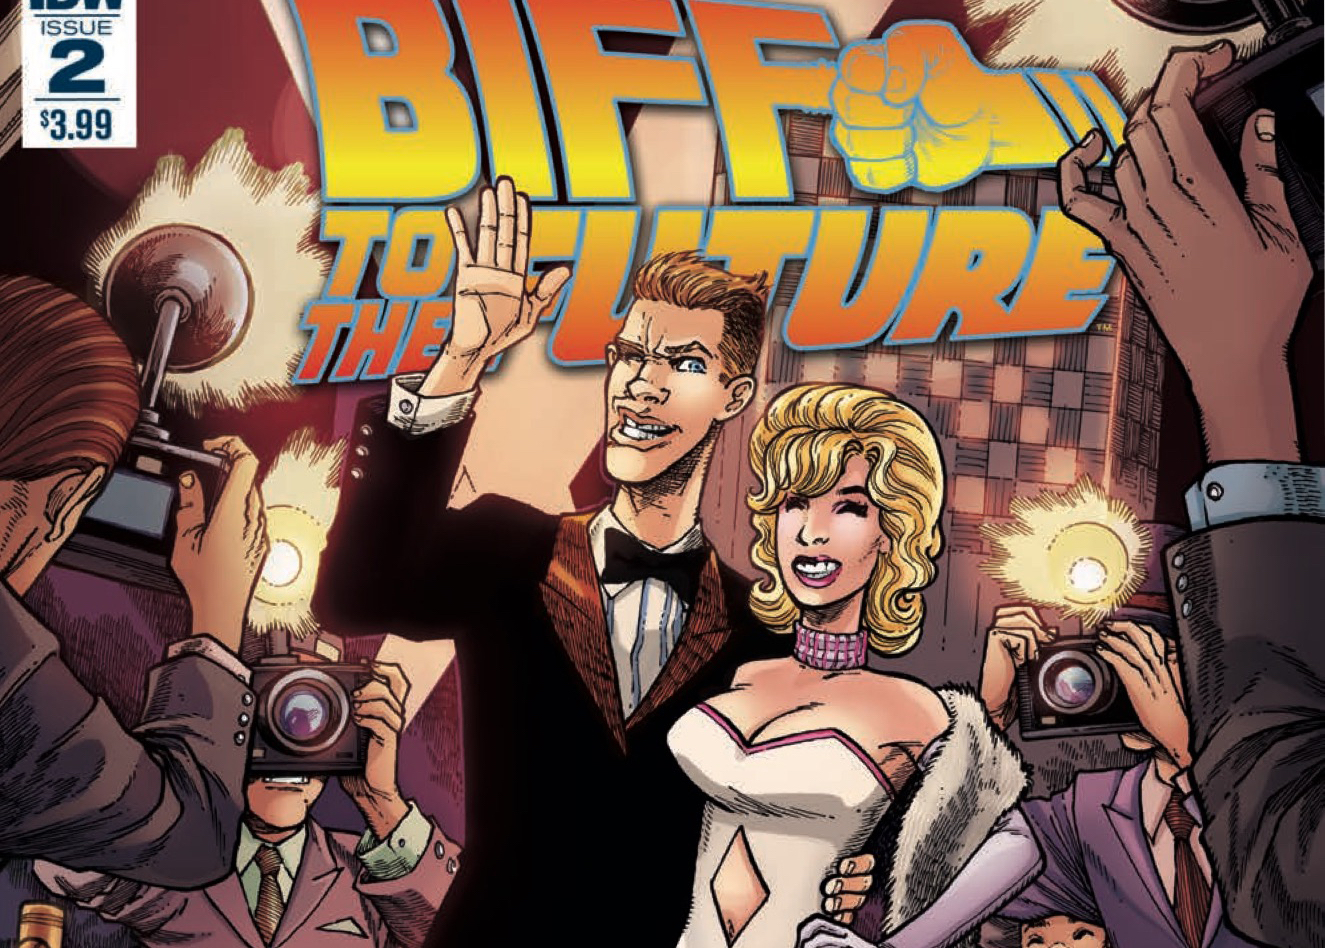 [EXCLUSIVE] IDW Preview: Back to the Future: Biff to the Future #2